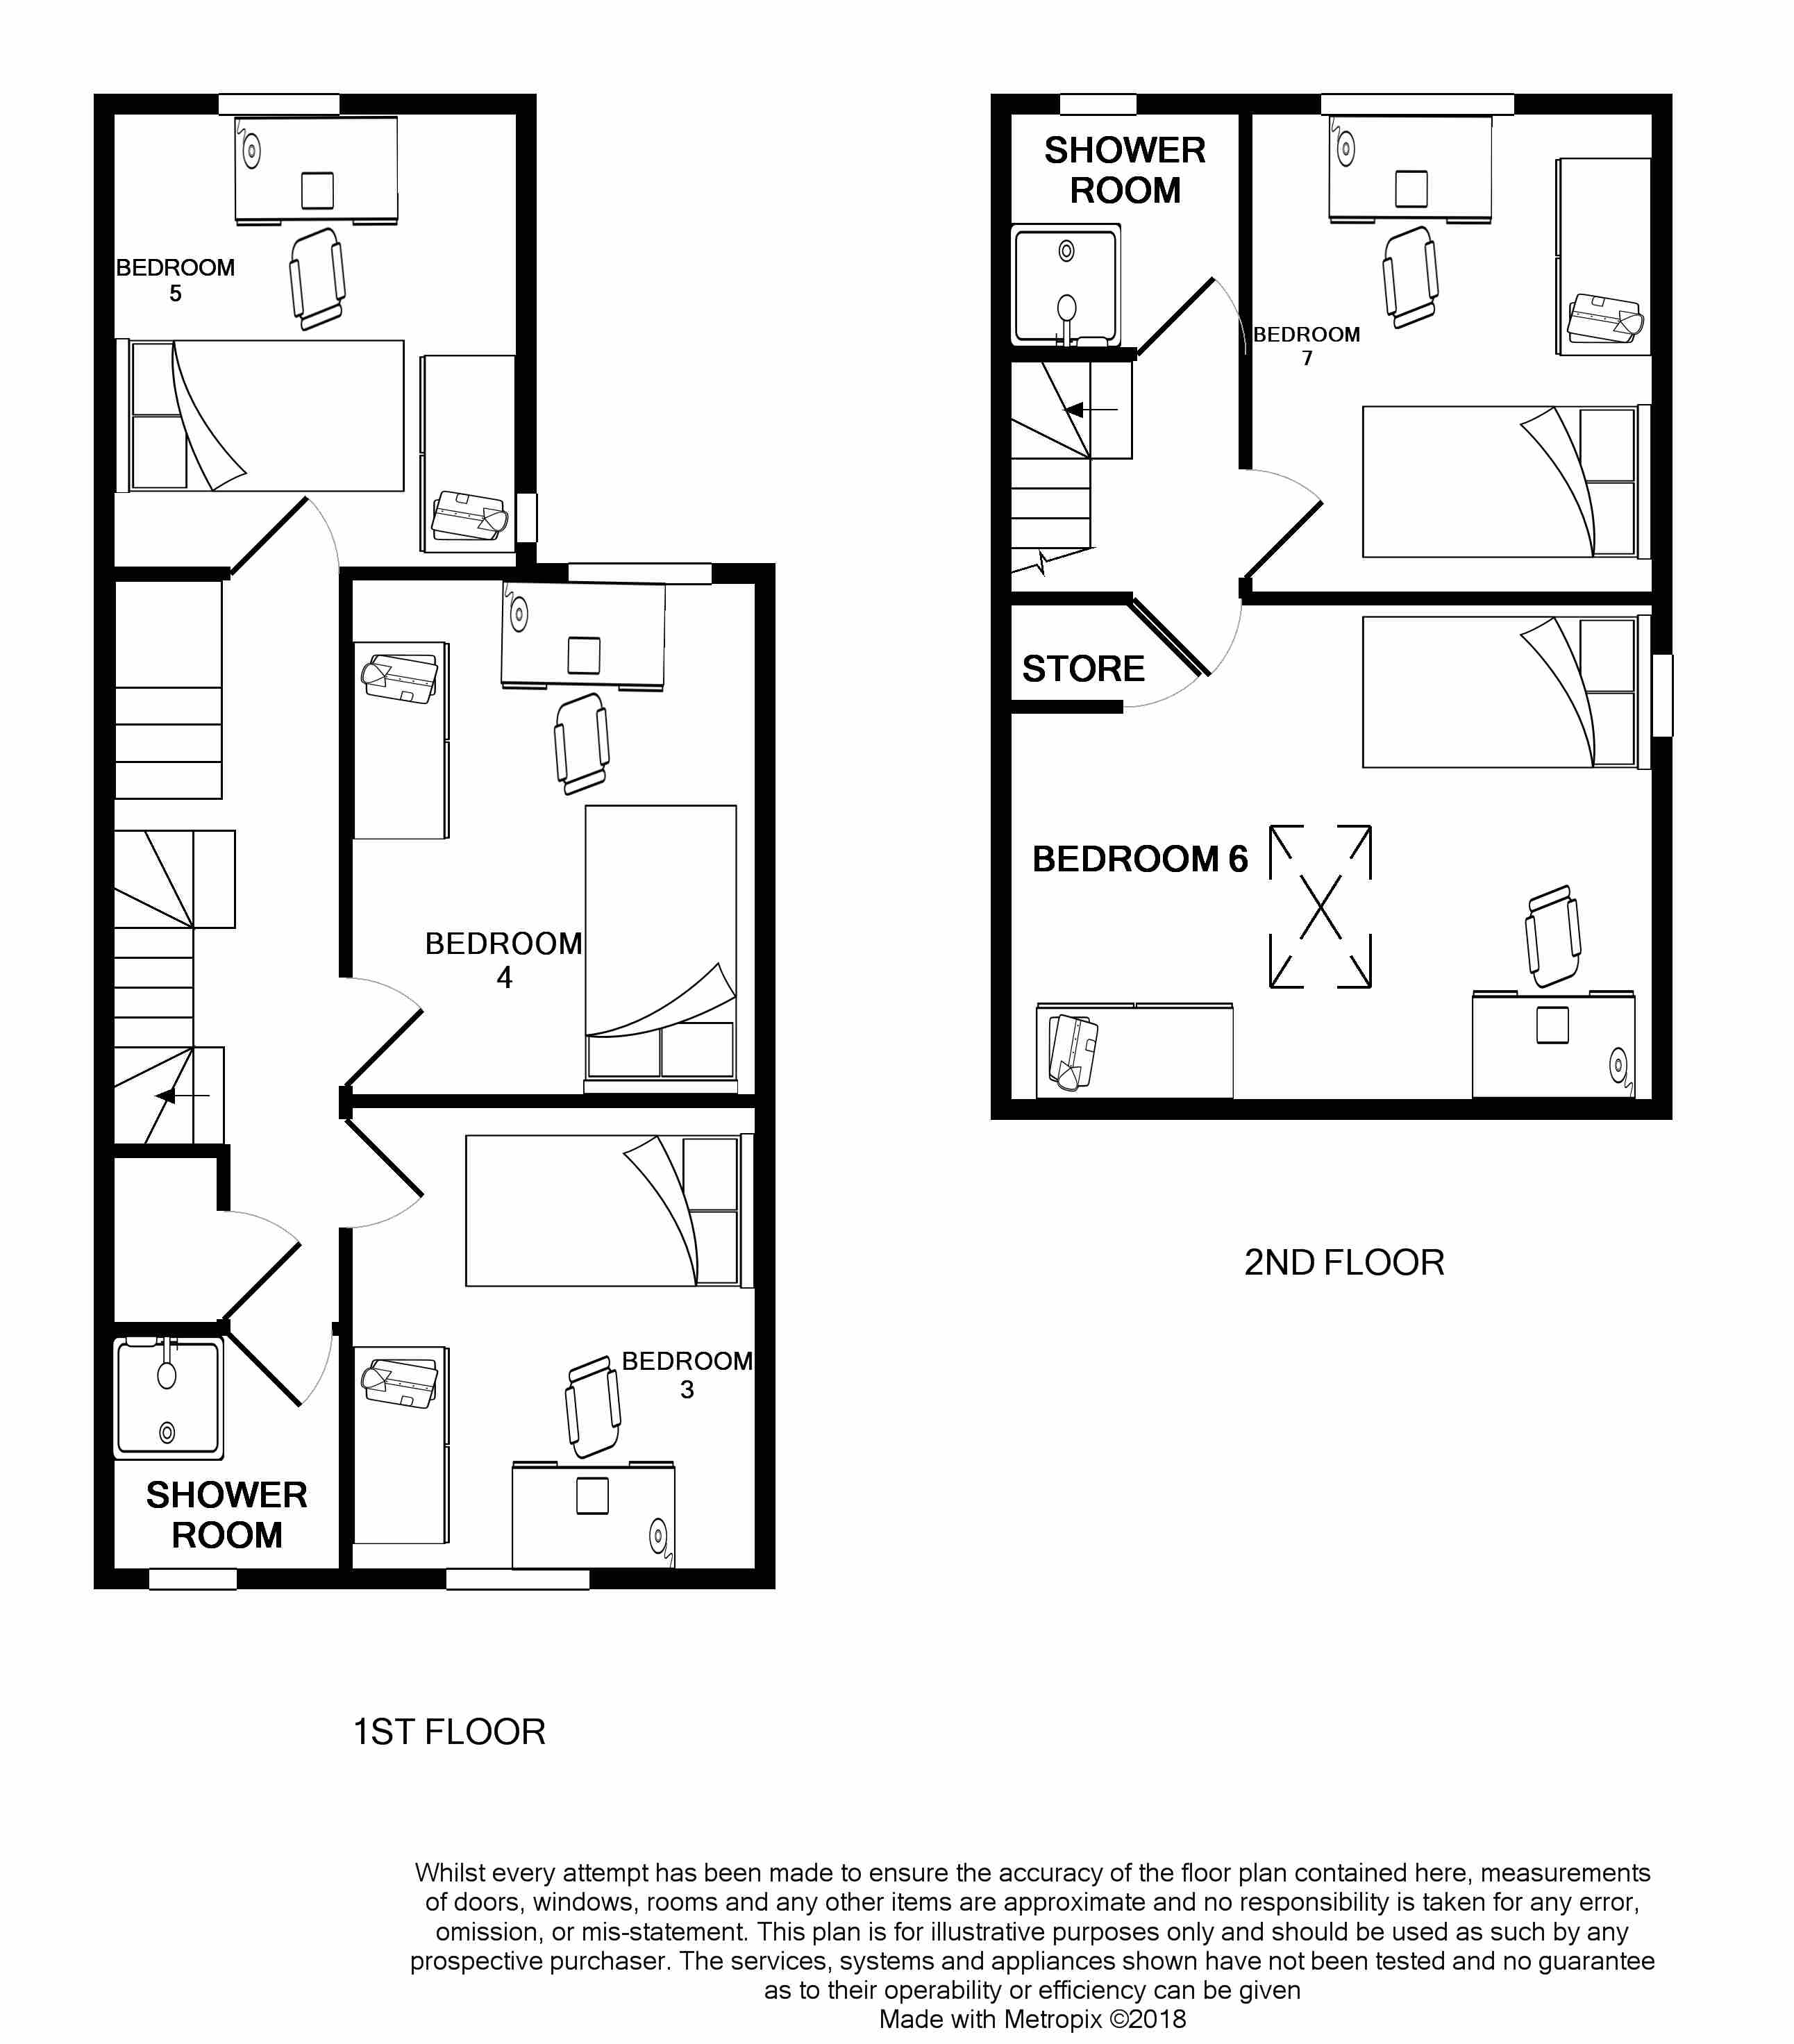 First and second floor plan